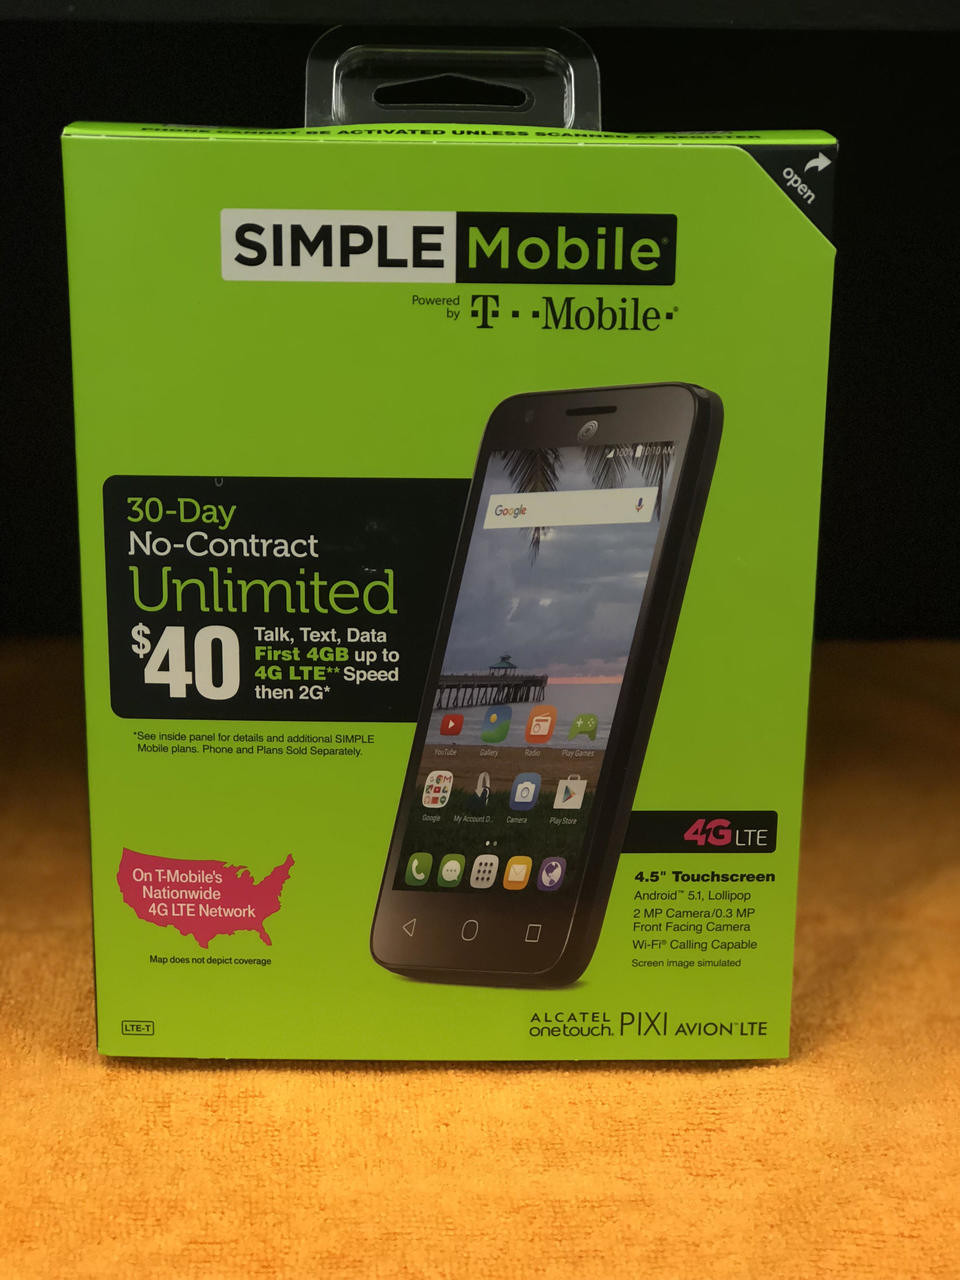 Simple Mobile Store In Detroitmi Phone Battery Charger Detroit Mi